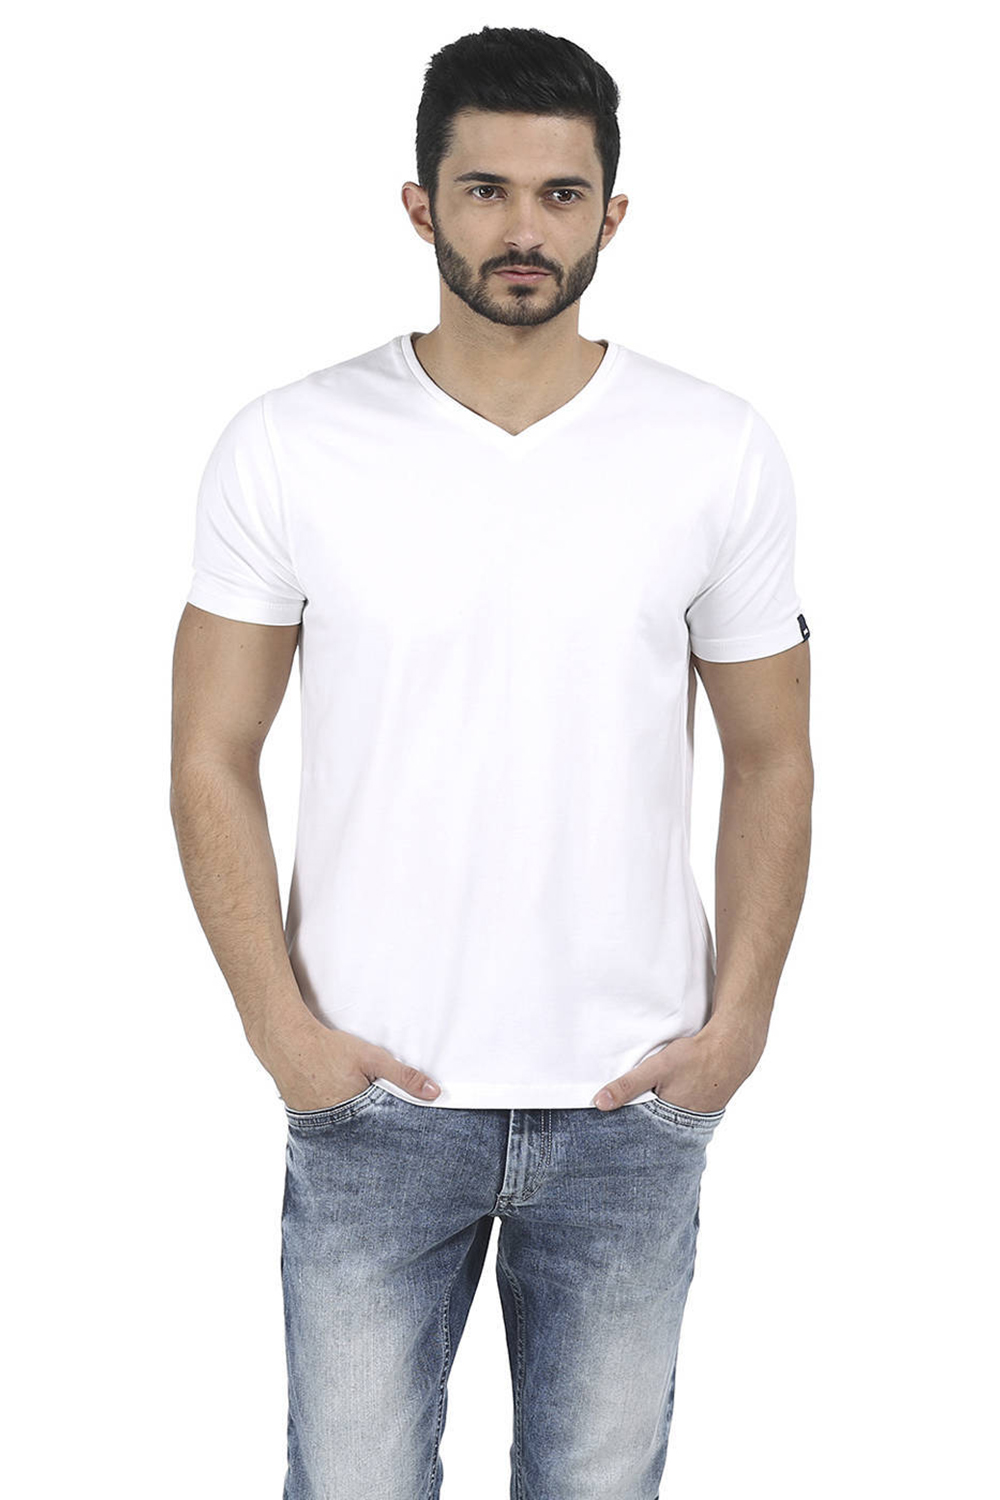 2d321ec0 Basics Muscle Fit Bright White V Neck T Shirt-16bts35318